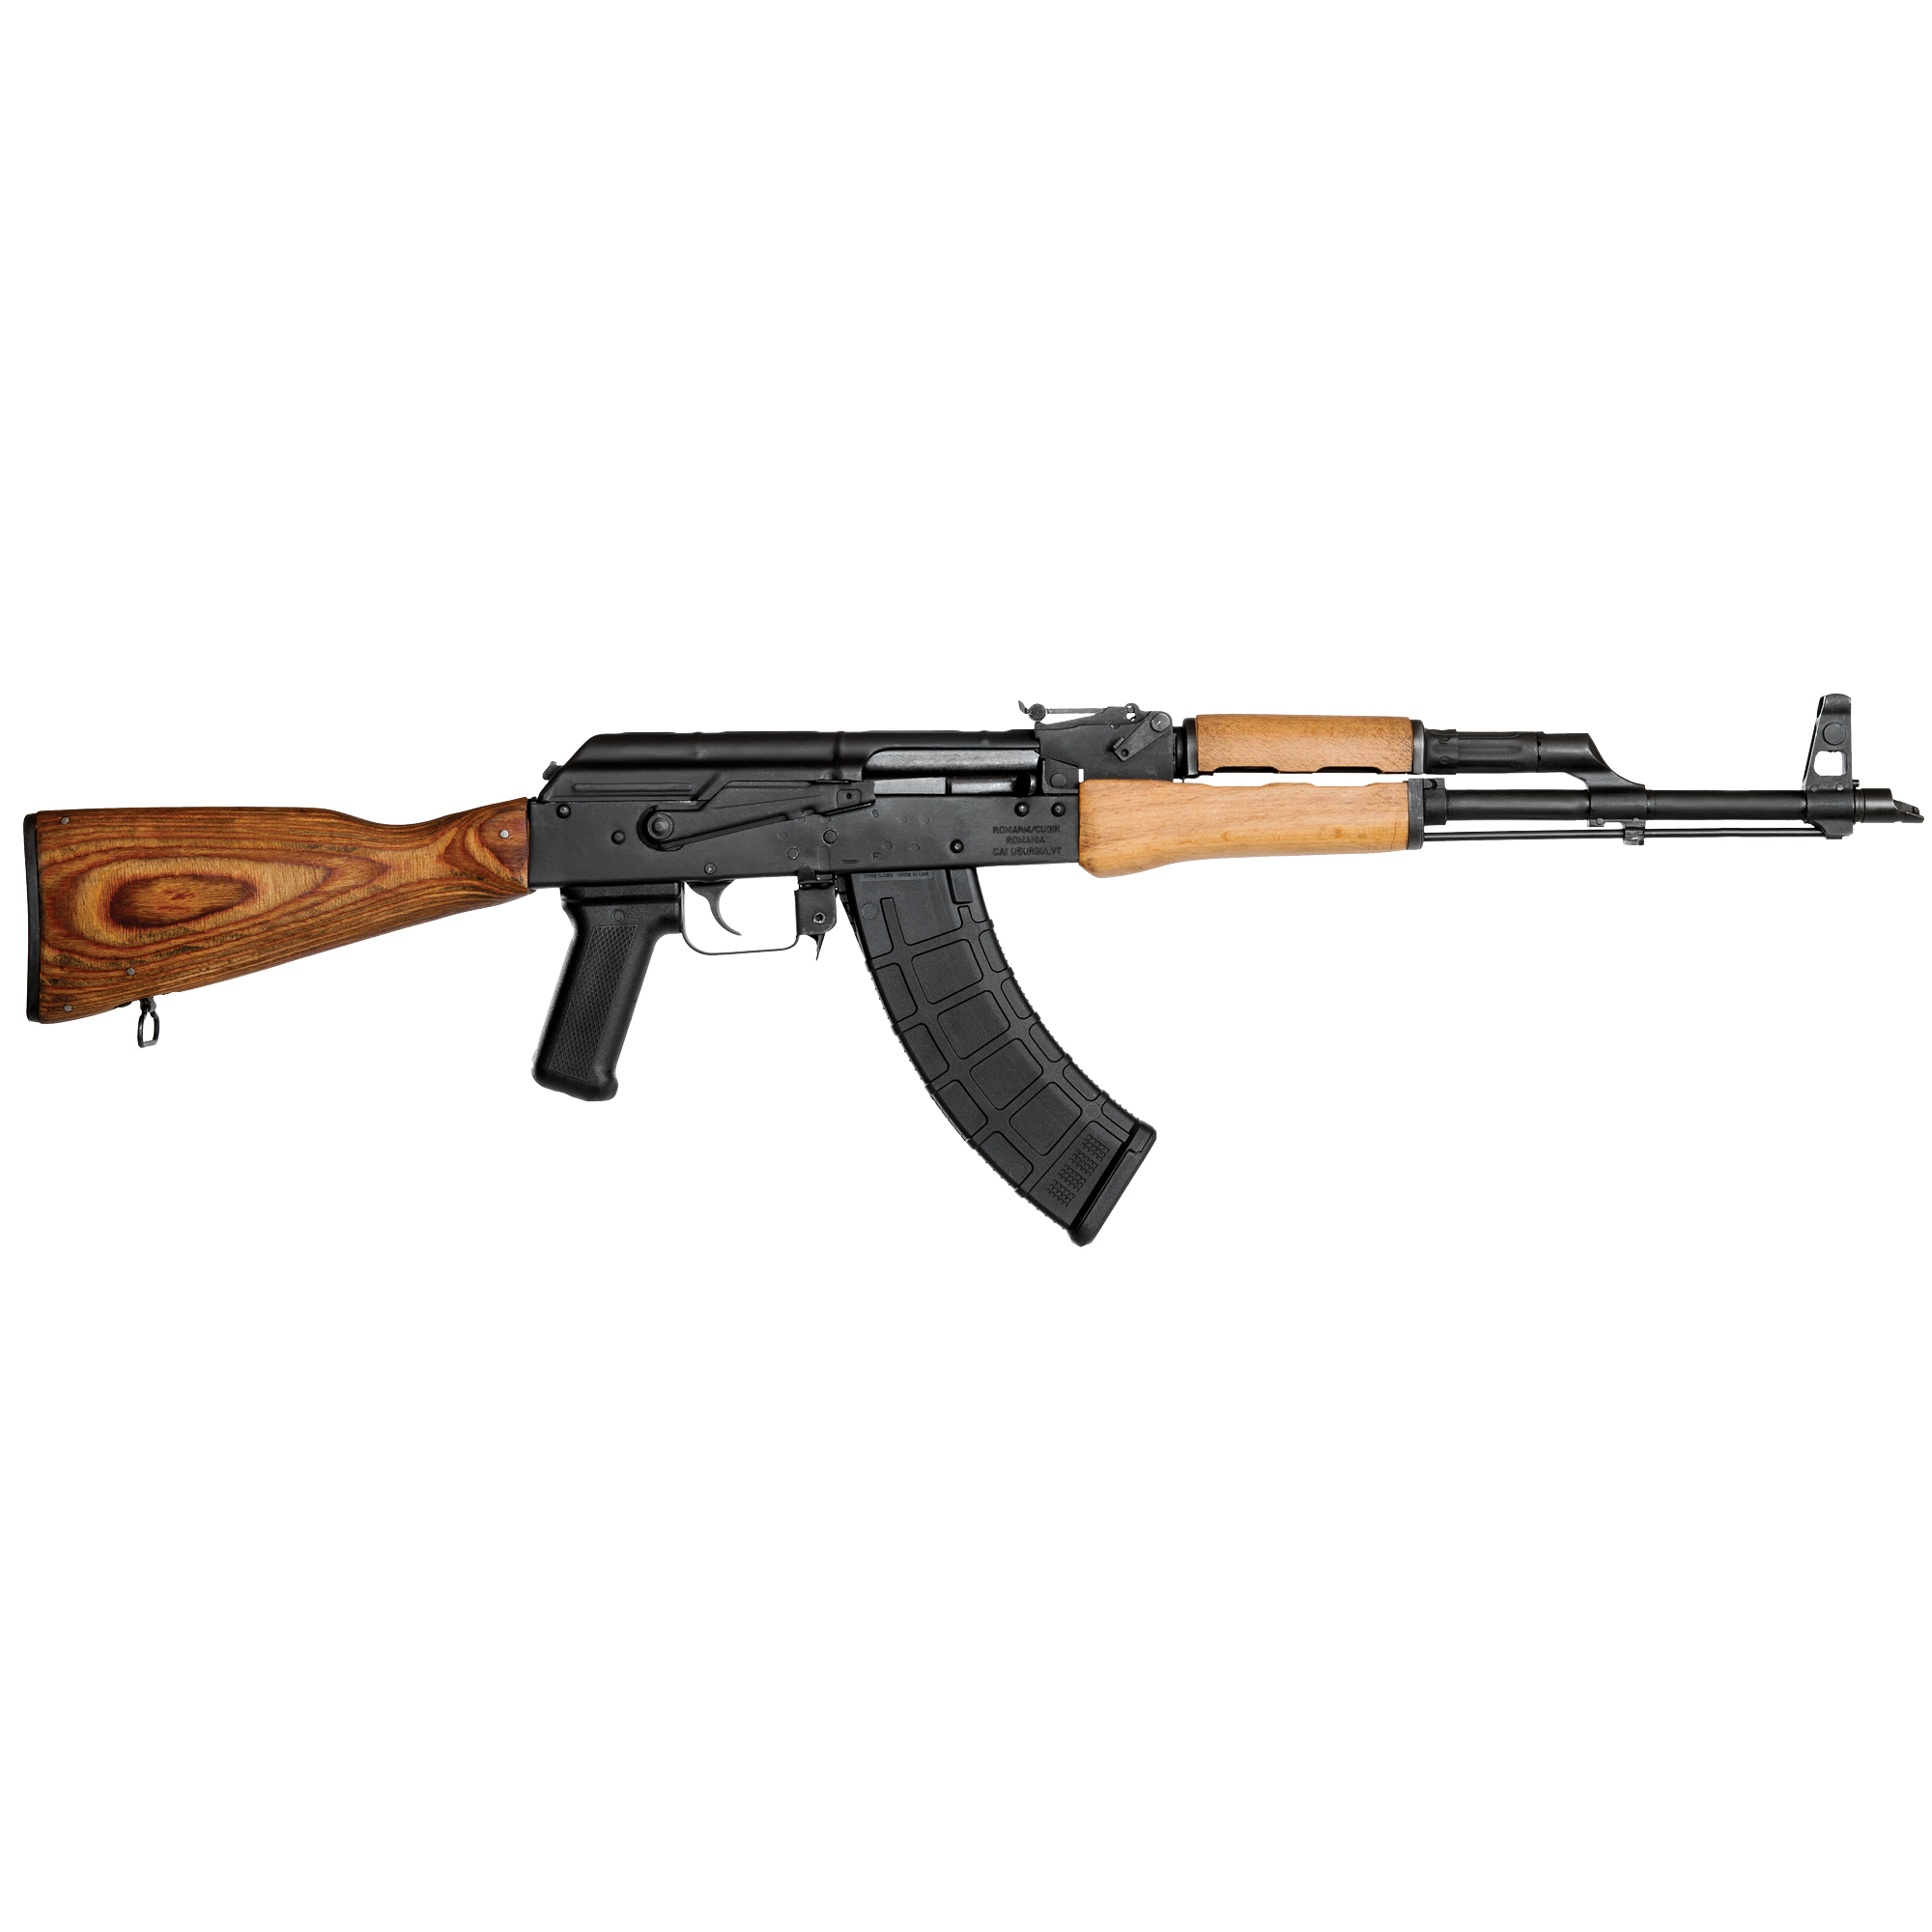 """The WASR-10 is known for its reliability and value. The hard chrome-lined hammer forged barrel"""" RAK-1 Enhanced Trigger Group and side mount scope rail make this rifle one of the best bargains in the industry."""